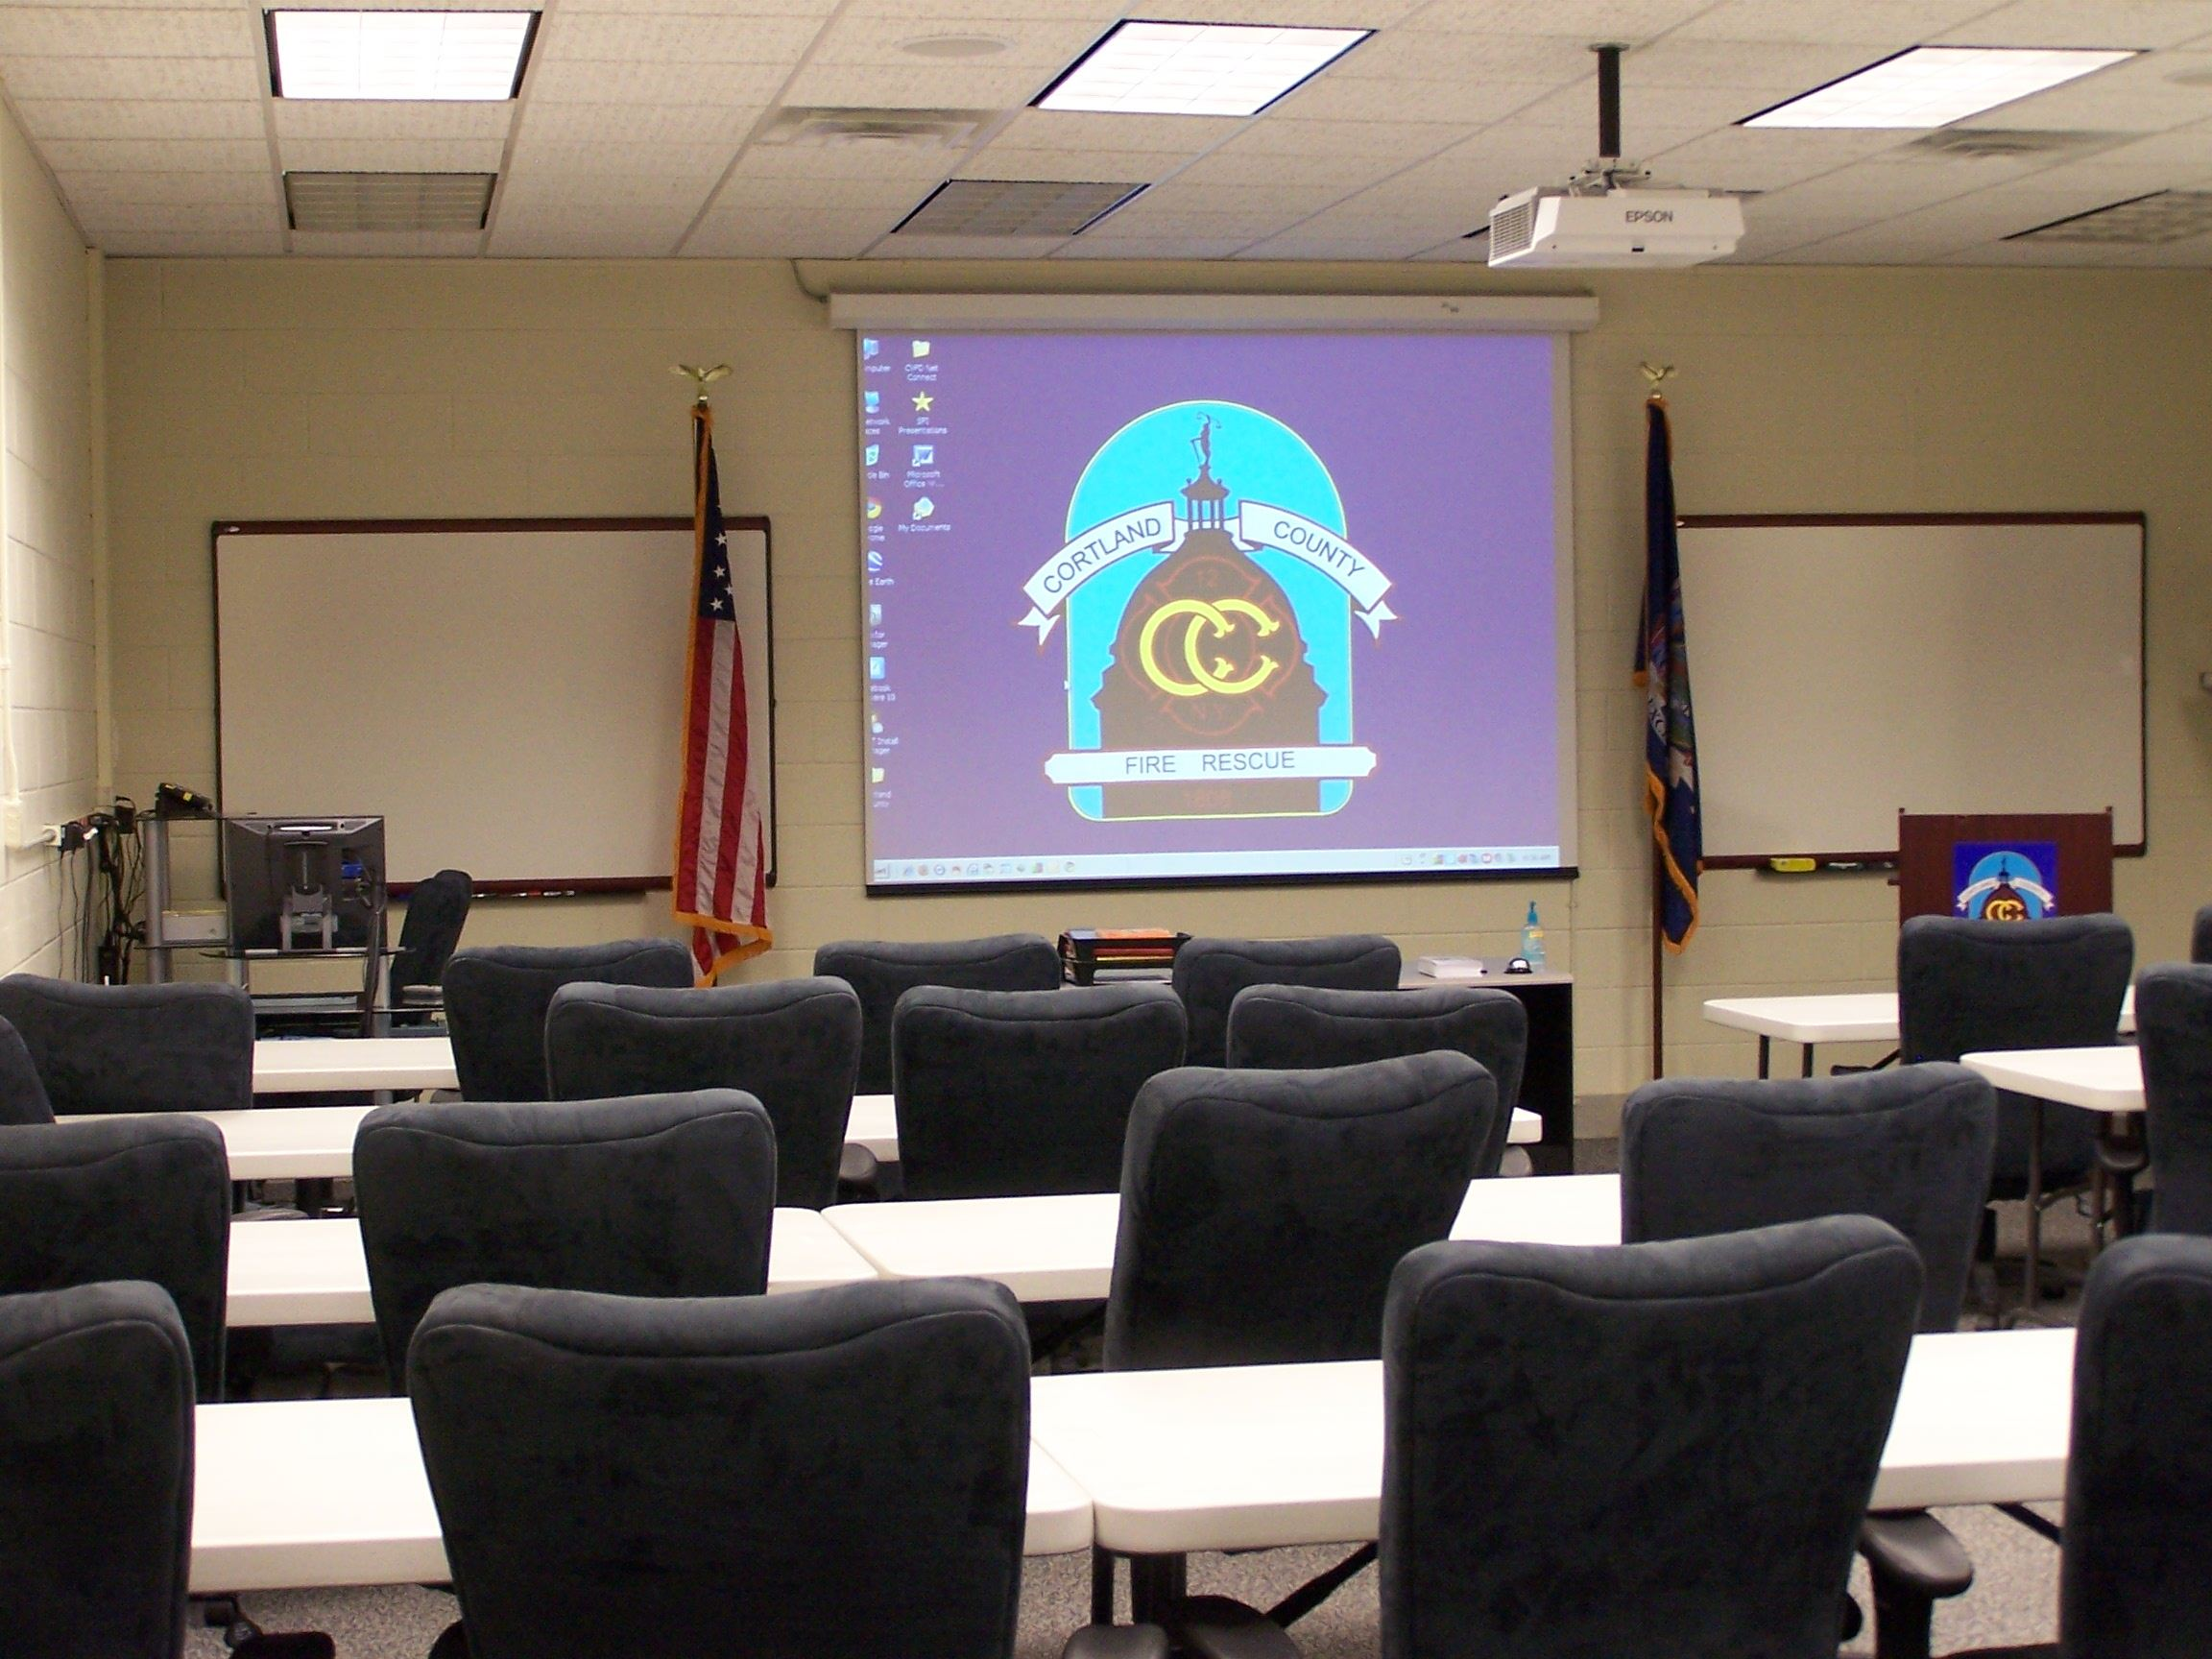 A classroom setting with tables and chairs facing the front on the room with the Cortland County Fire Rescue logo.